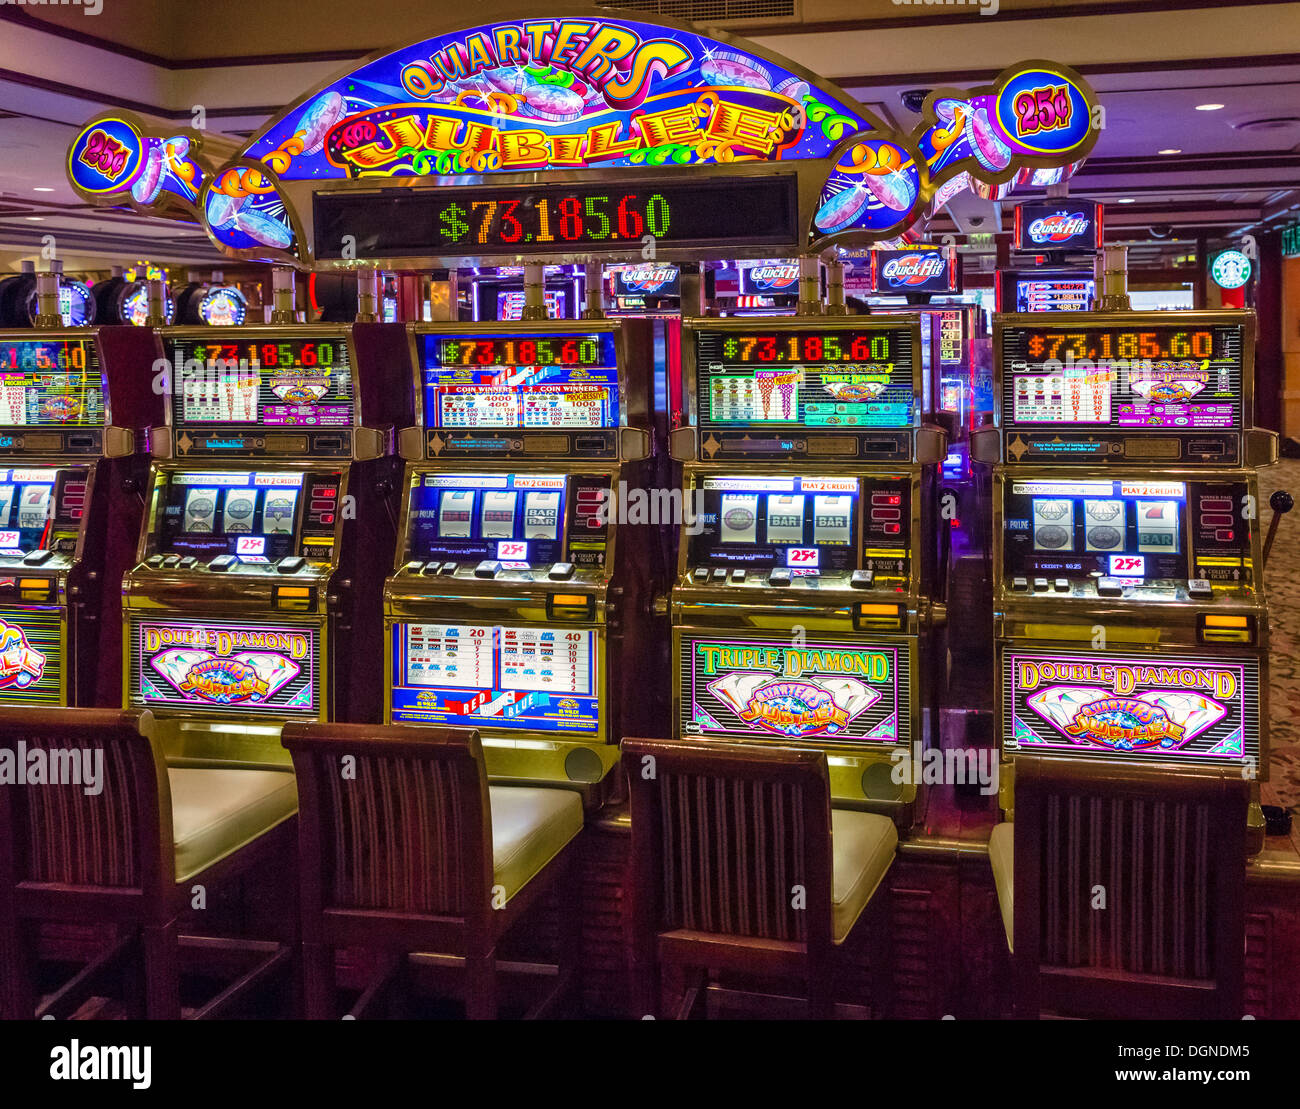 Vegas casino slot poker gratis texas